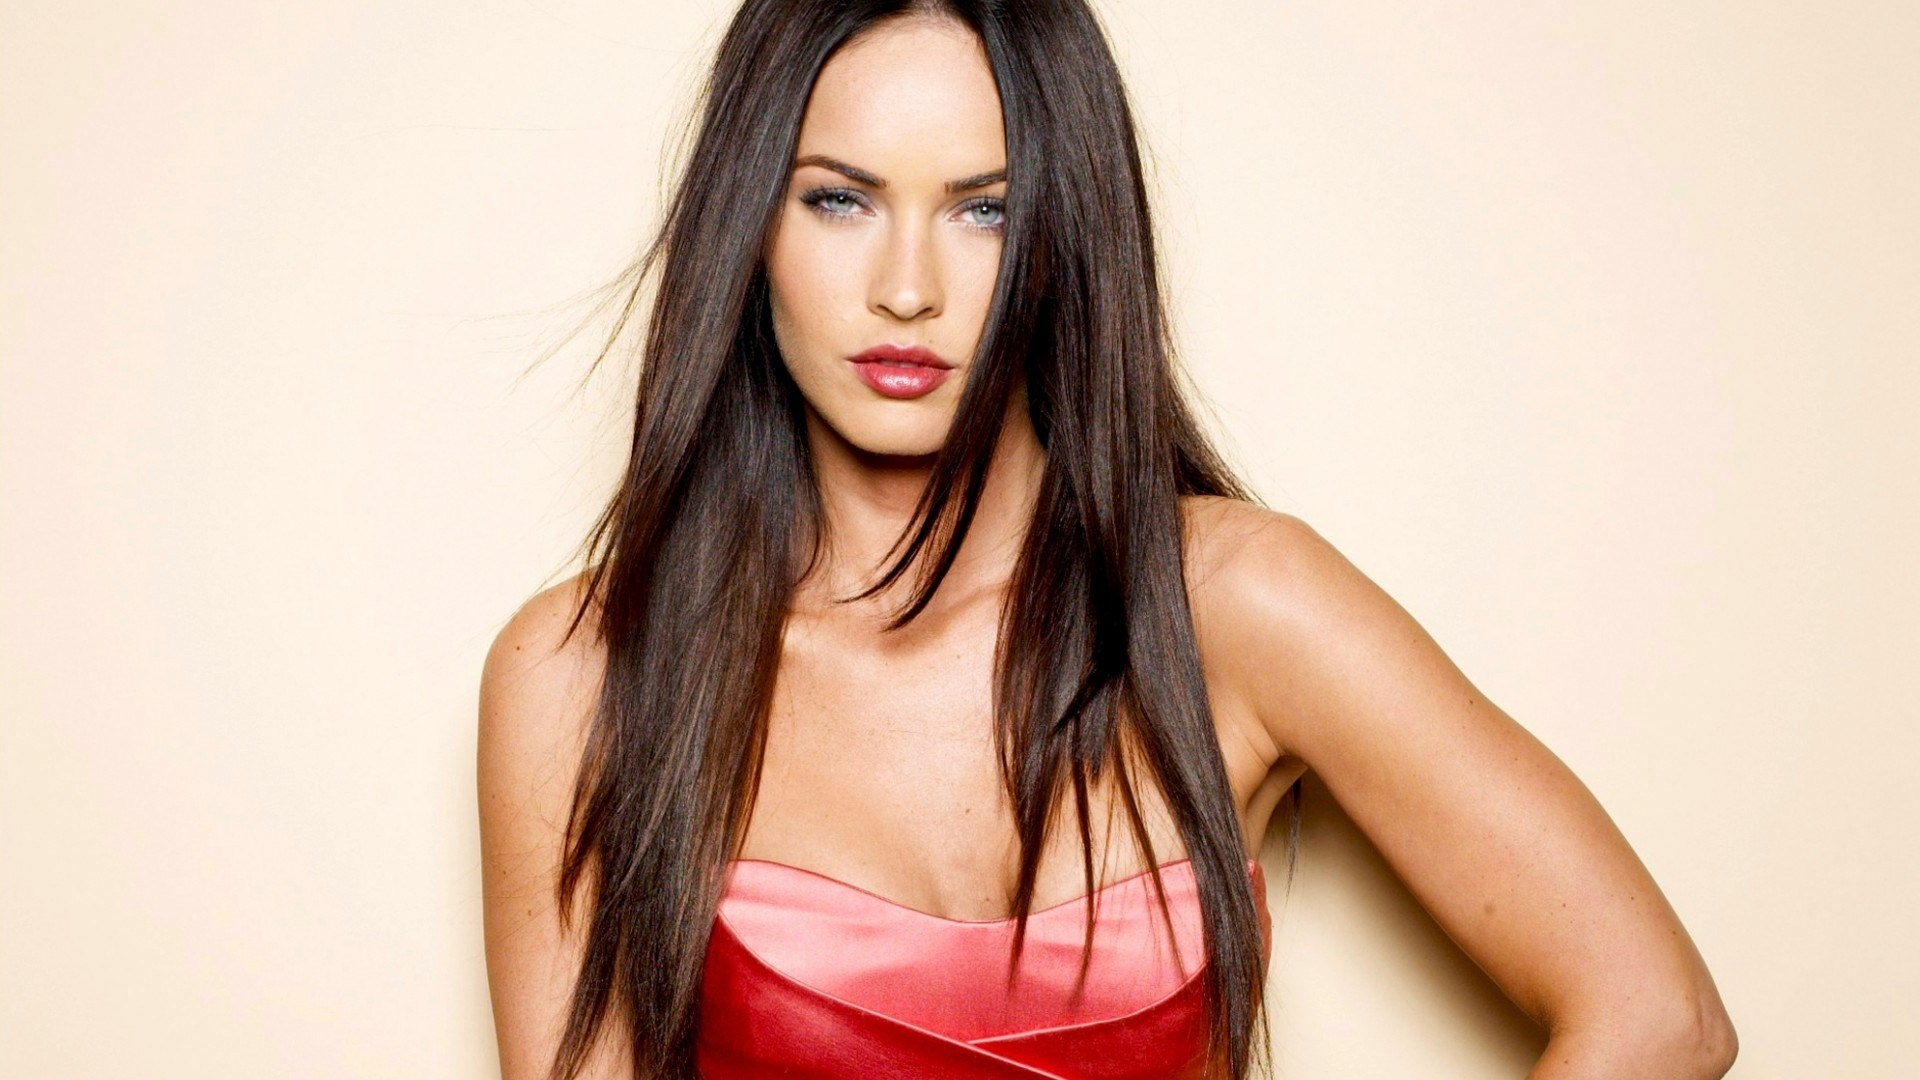 for-Desktop-megan-fox-picture-son-Black-1920x1080-wallpaper-wpc58010052